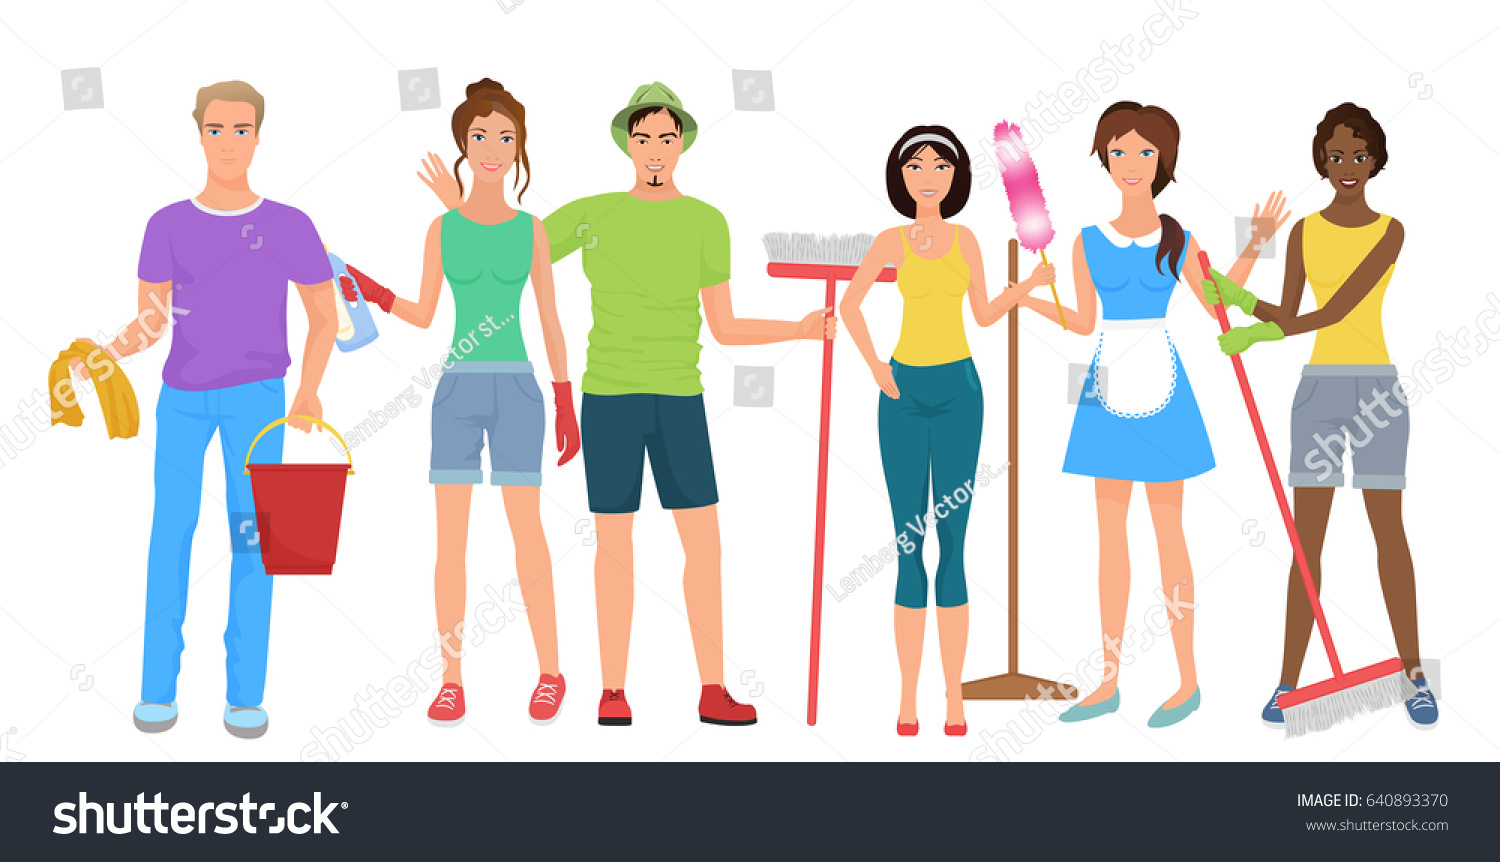 People Cleaning Services : Man woman janitors cleaners cleaning people stock